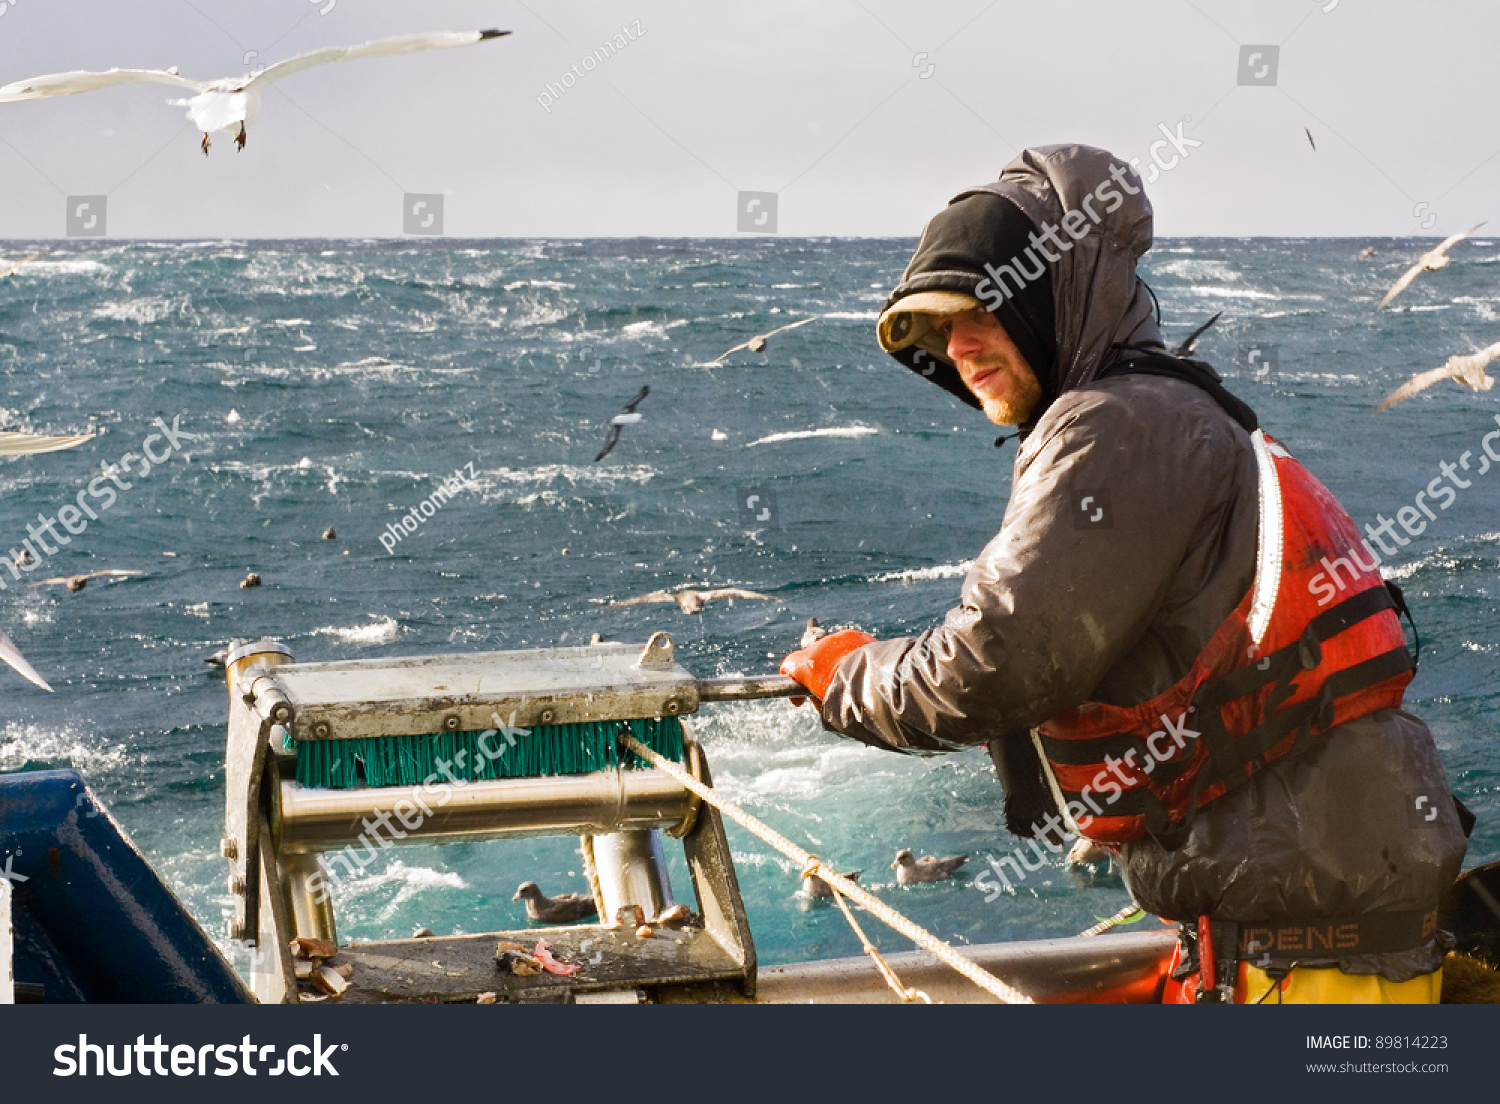 Commercial fishing stock photo 89814223 shutterstock for What is commercial fishing